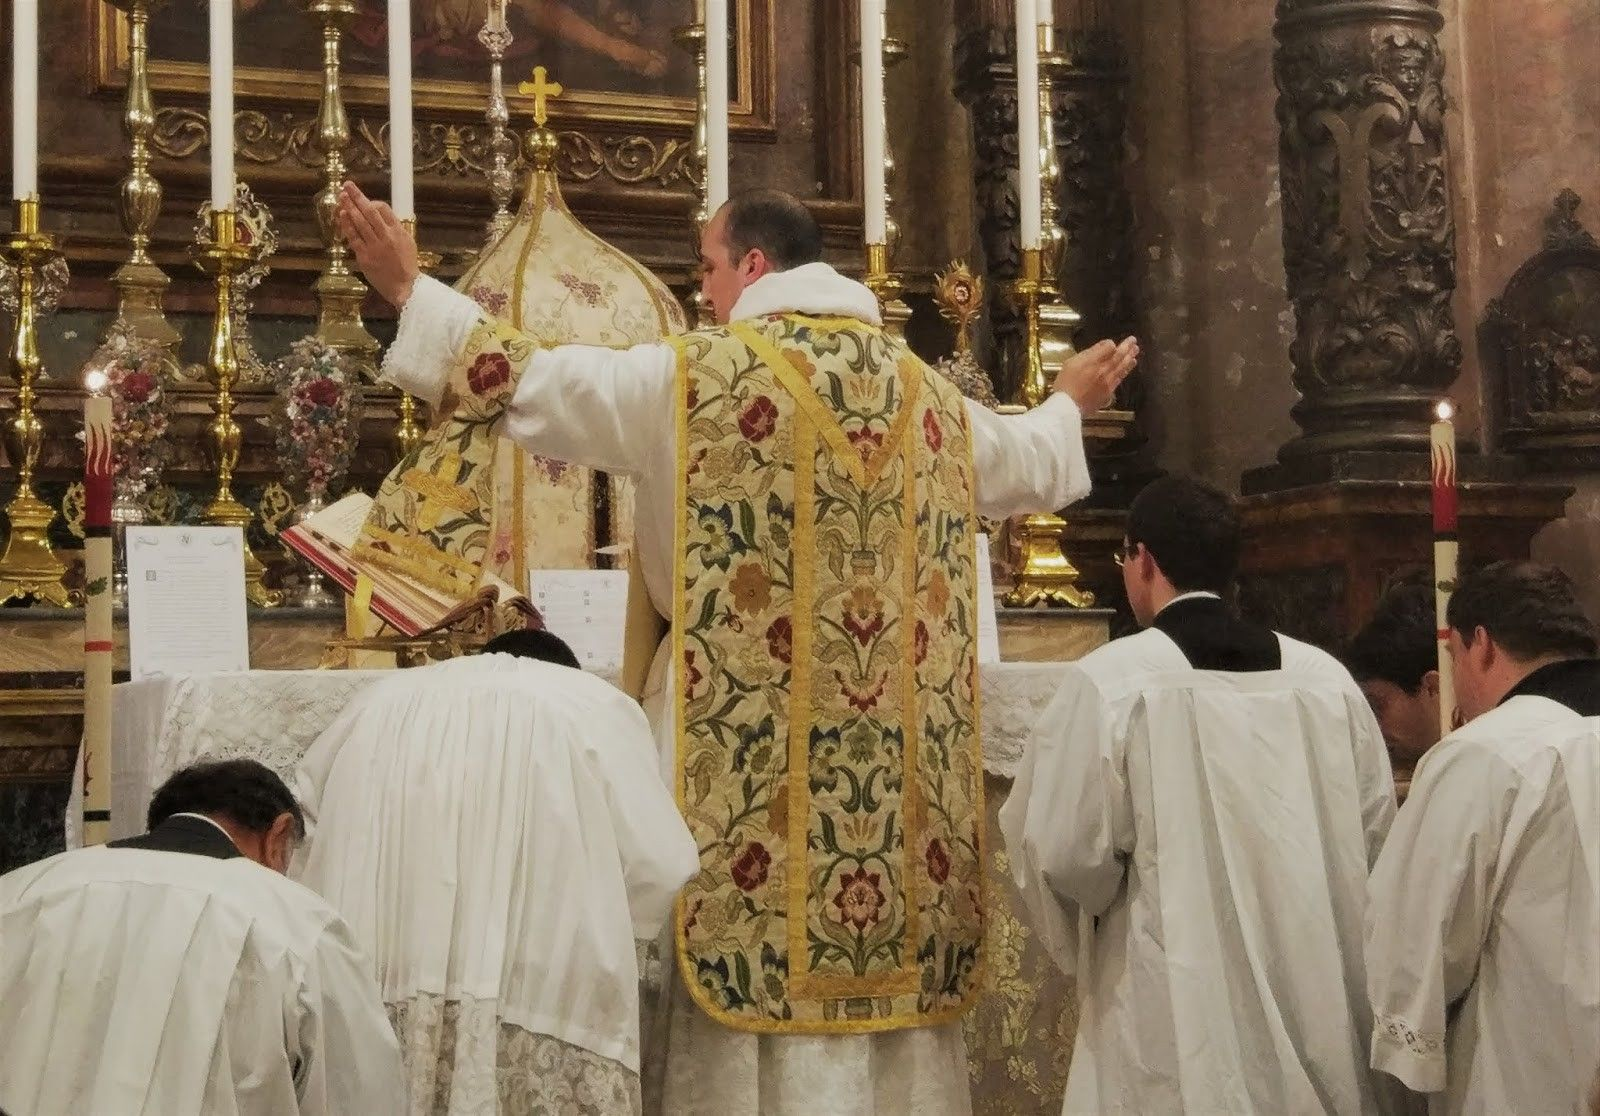 Dominican Rite | Latin mass, Catholic church, Catholic